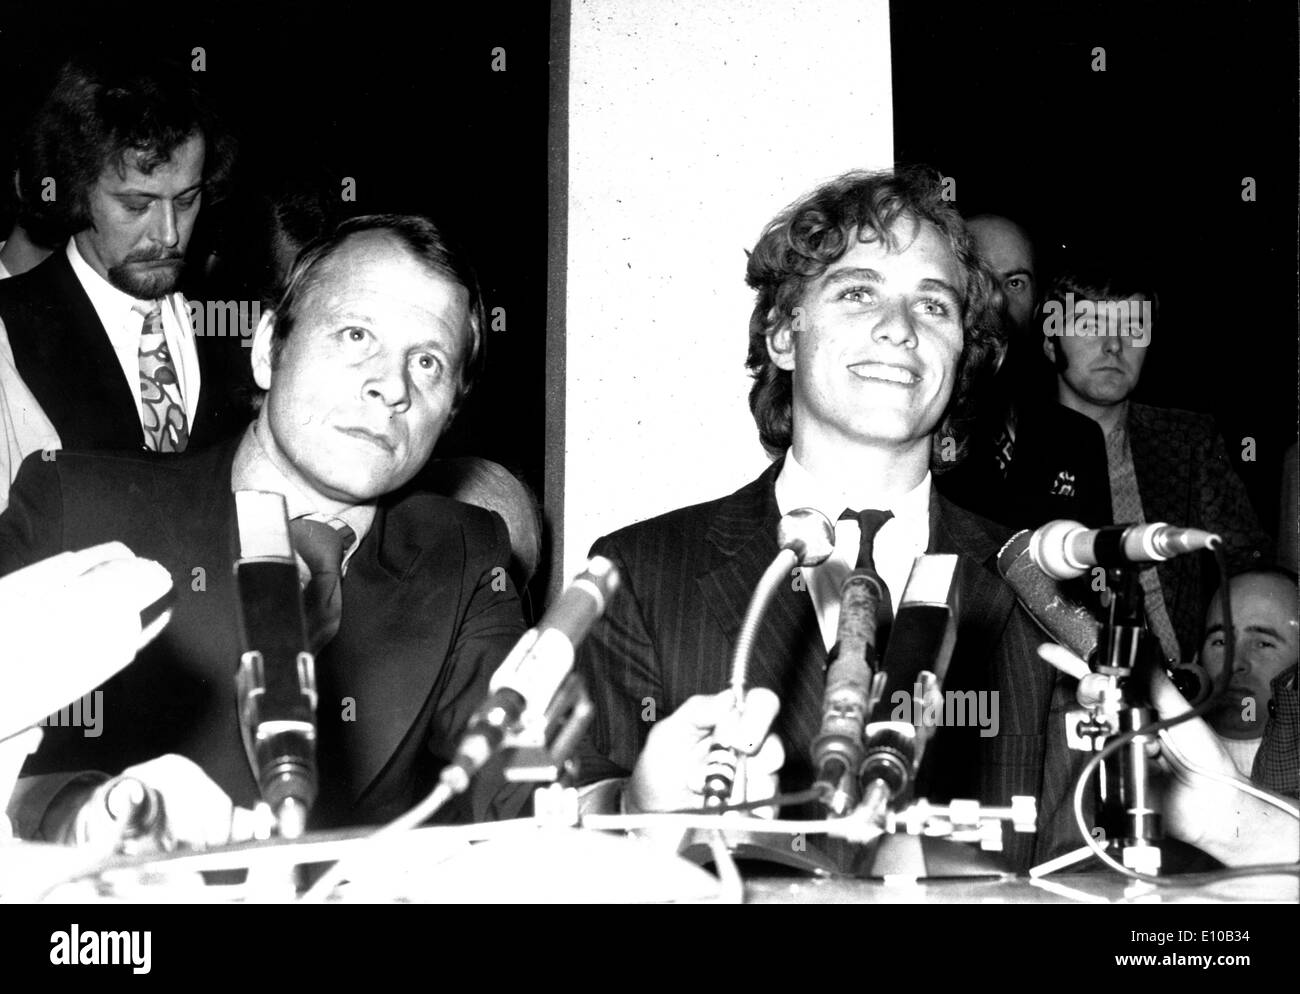 Feb 26, 1972; Frankfurt, Germany; The most prominent of the 123 male passengers of the Lufthansa Jmbo Jet, which had been hijacked to Aden by Palestinian Airpirates, was JOSEPH KENNEDY, son of the assassinated US Senator Robert Kennedy, who arrived at Frankfurt Airport with a special plane. Joseph just gave an improved press conference of some miniutes to answer the journalist's questions. - Stock Image